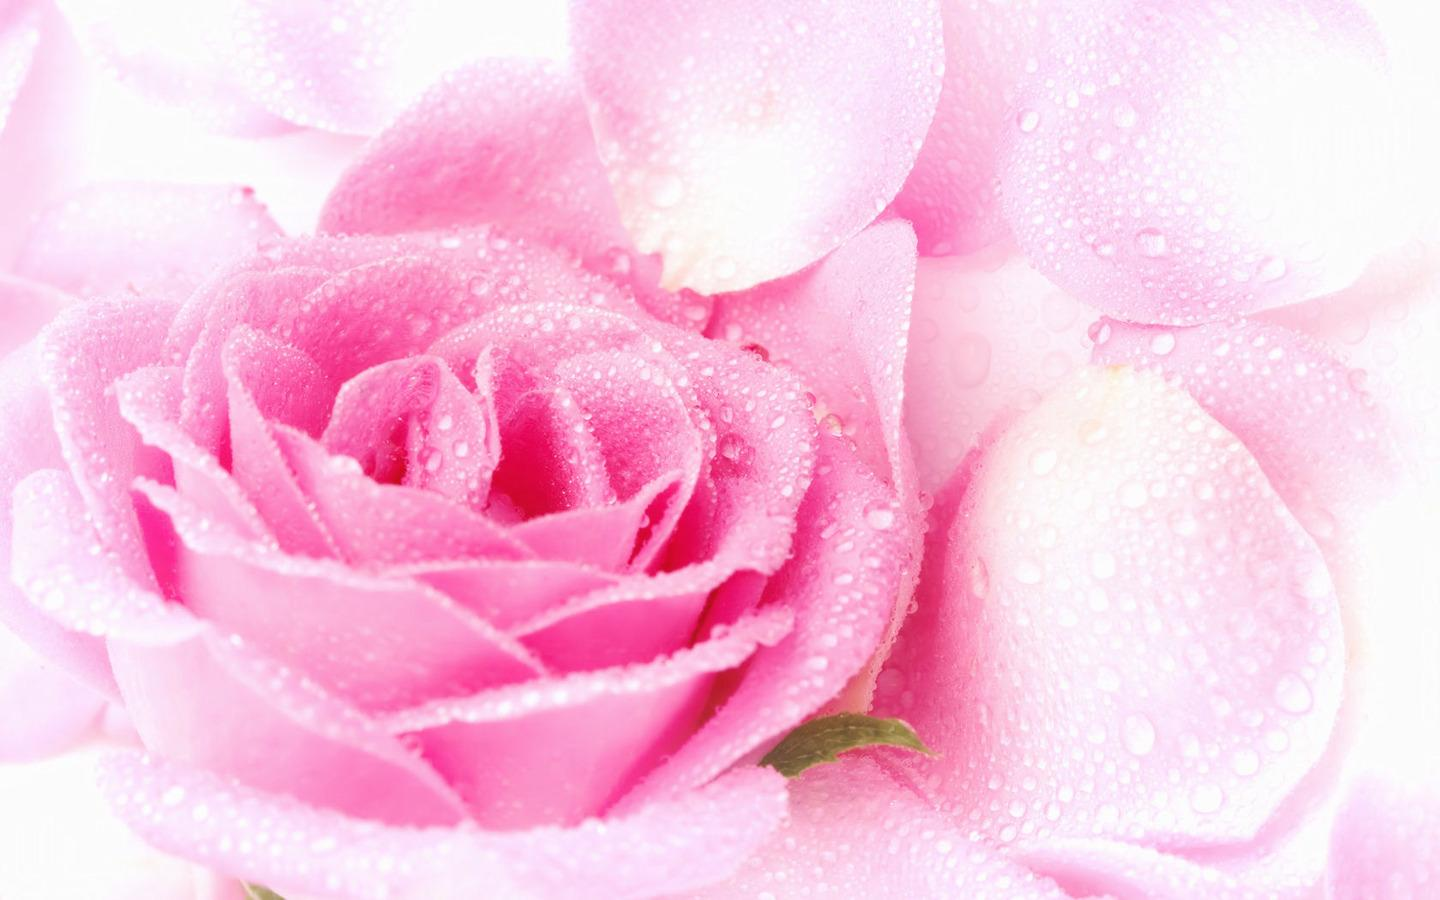 Pretty Pink Roses Wallpaper   Pink Color Photo 34590747 1440x900